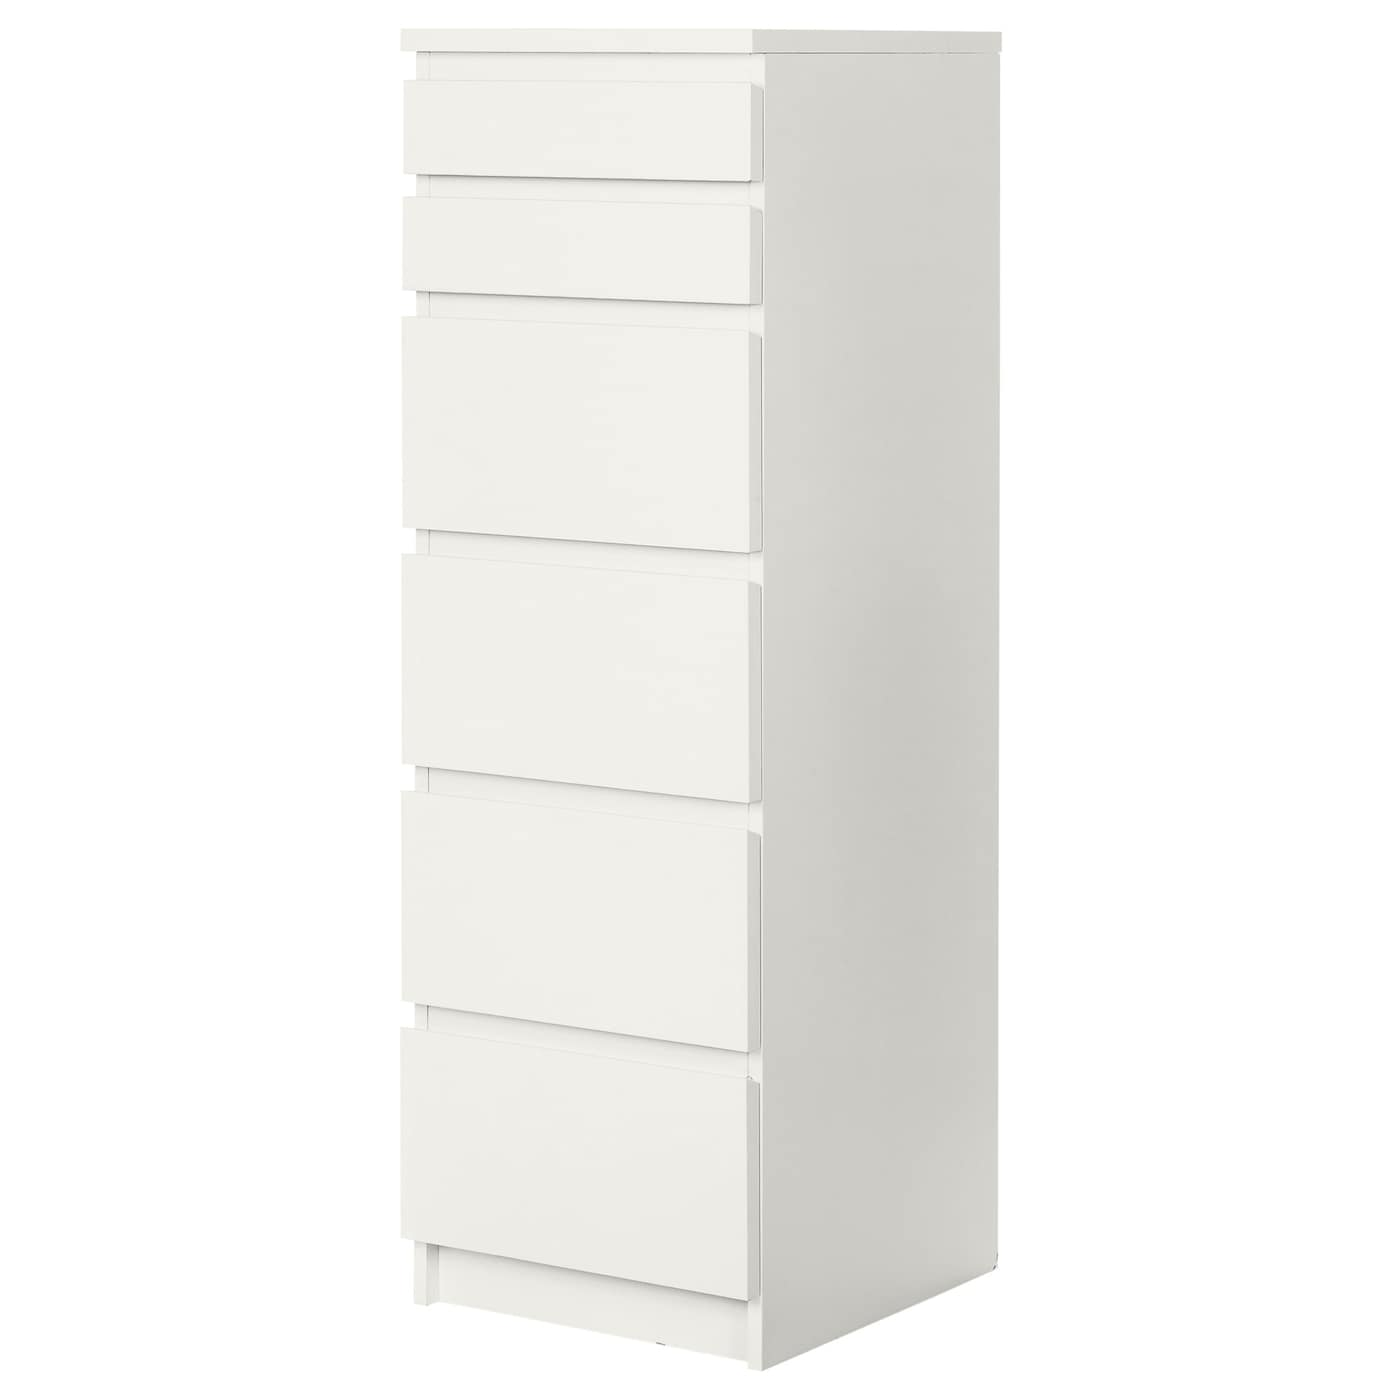 IKEA MALM chest of 6 drawers Built-in mirror. Smooth running drawers with pull-out stop.